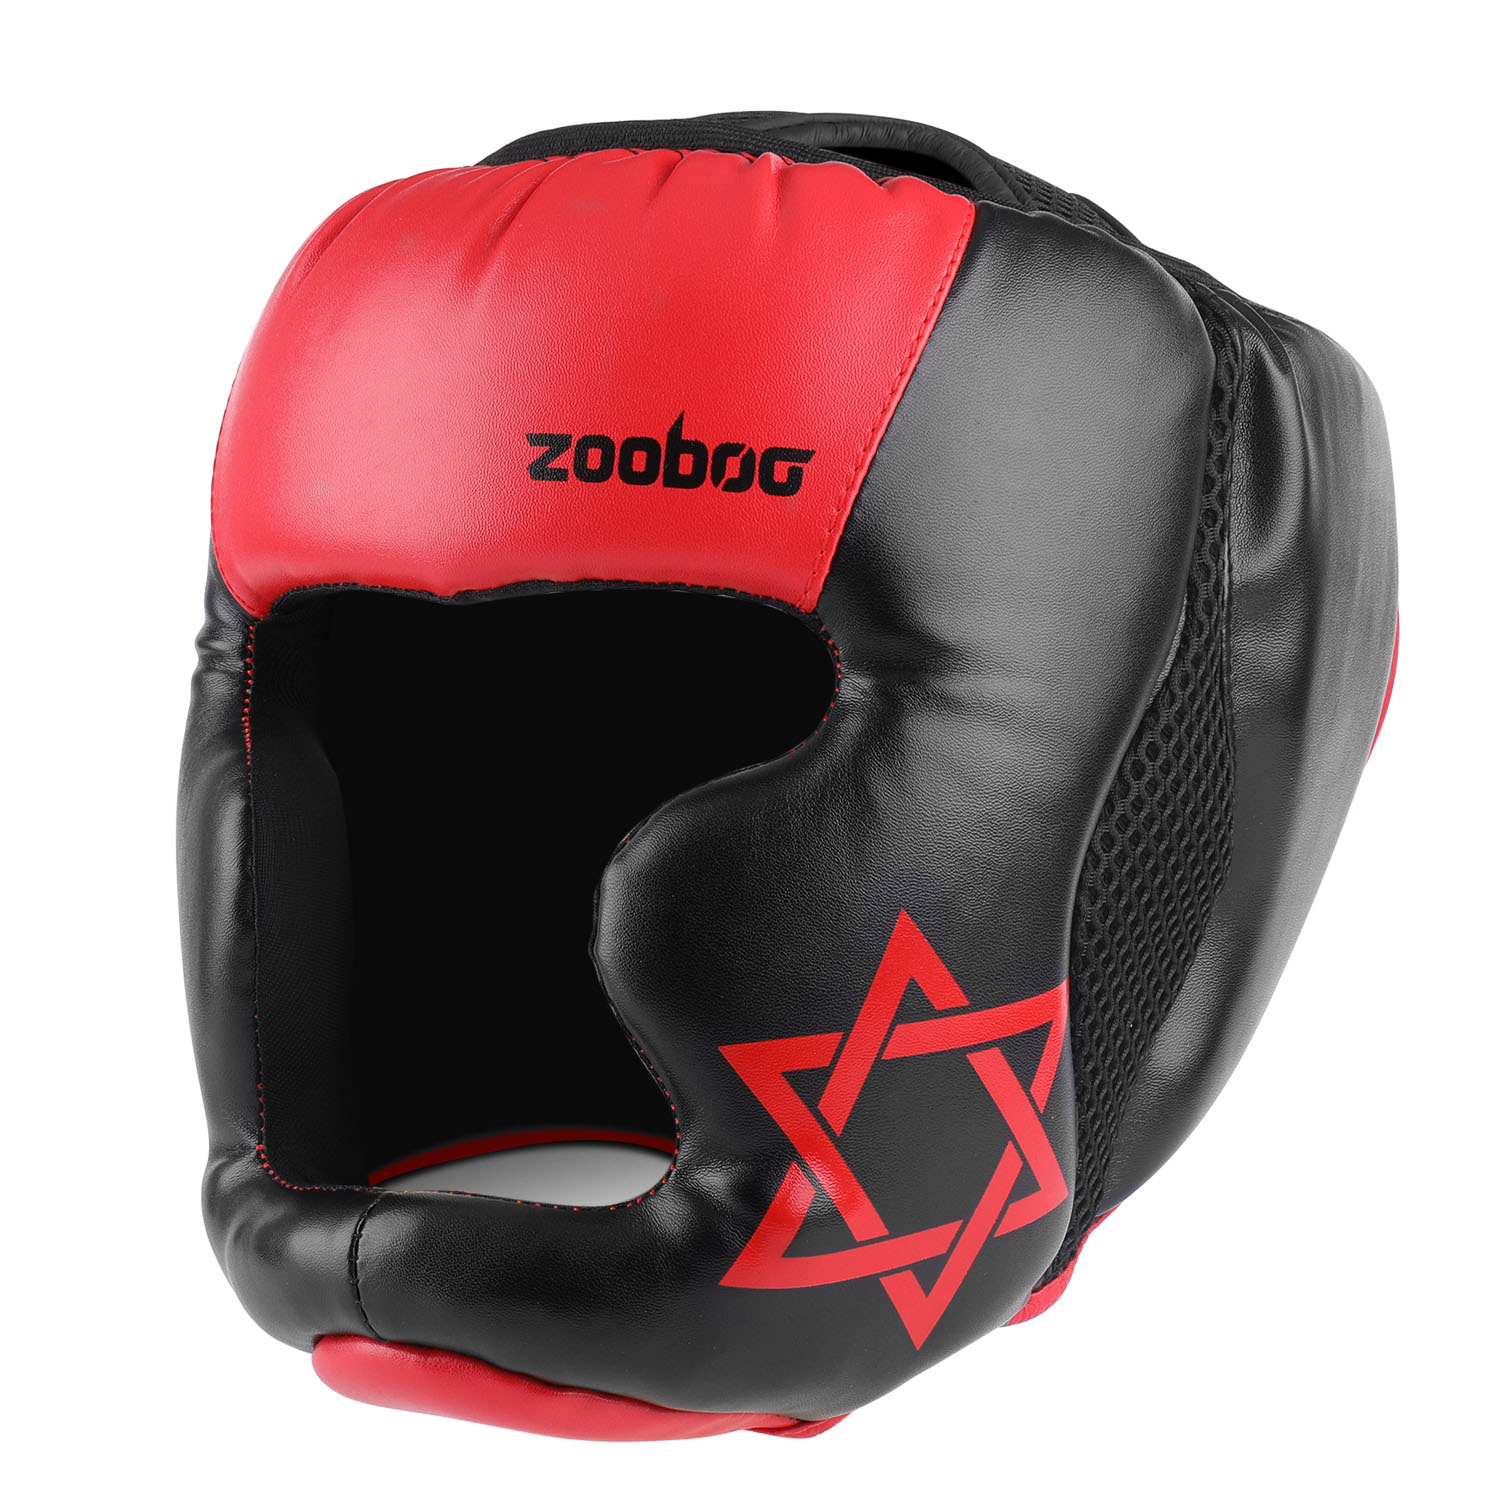 Synthetic Leather Mma Headgear Ufc Fighting Head Guard Sparrin Boxing Headgear